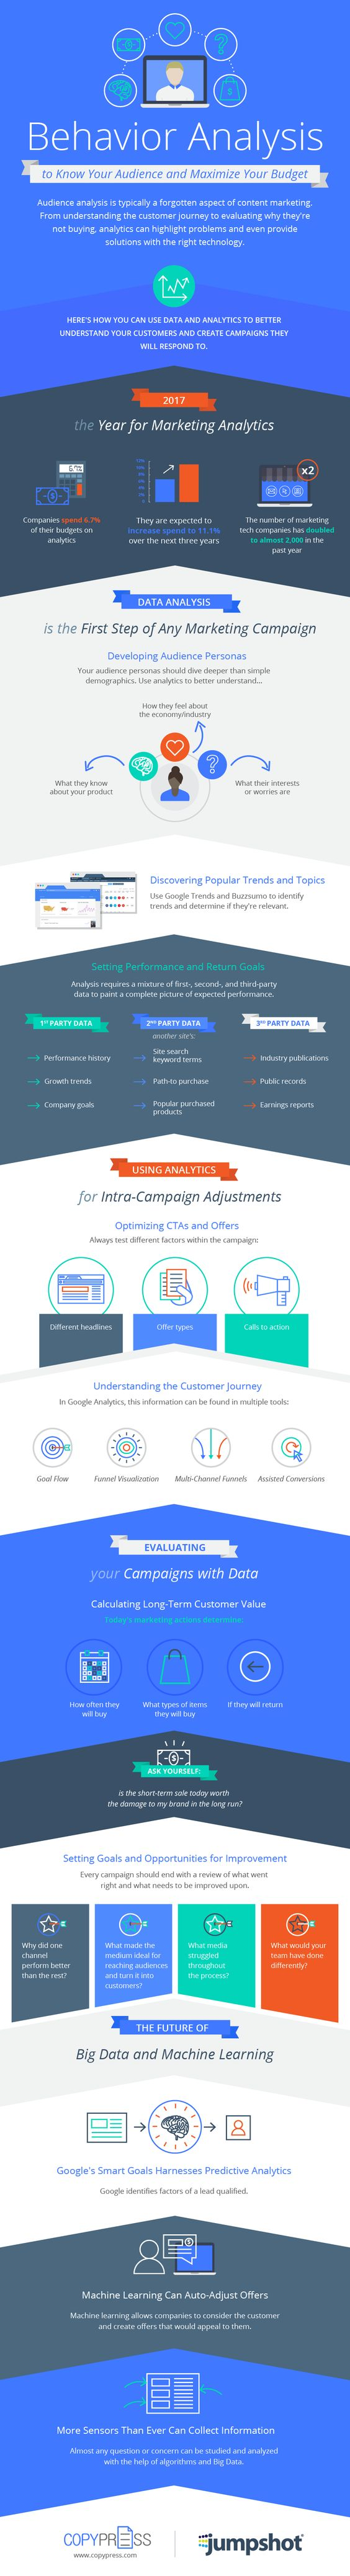 Infographic Of The Week: Using Behavioral Analytics To Know Your Audience